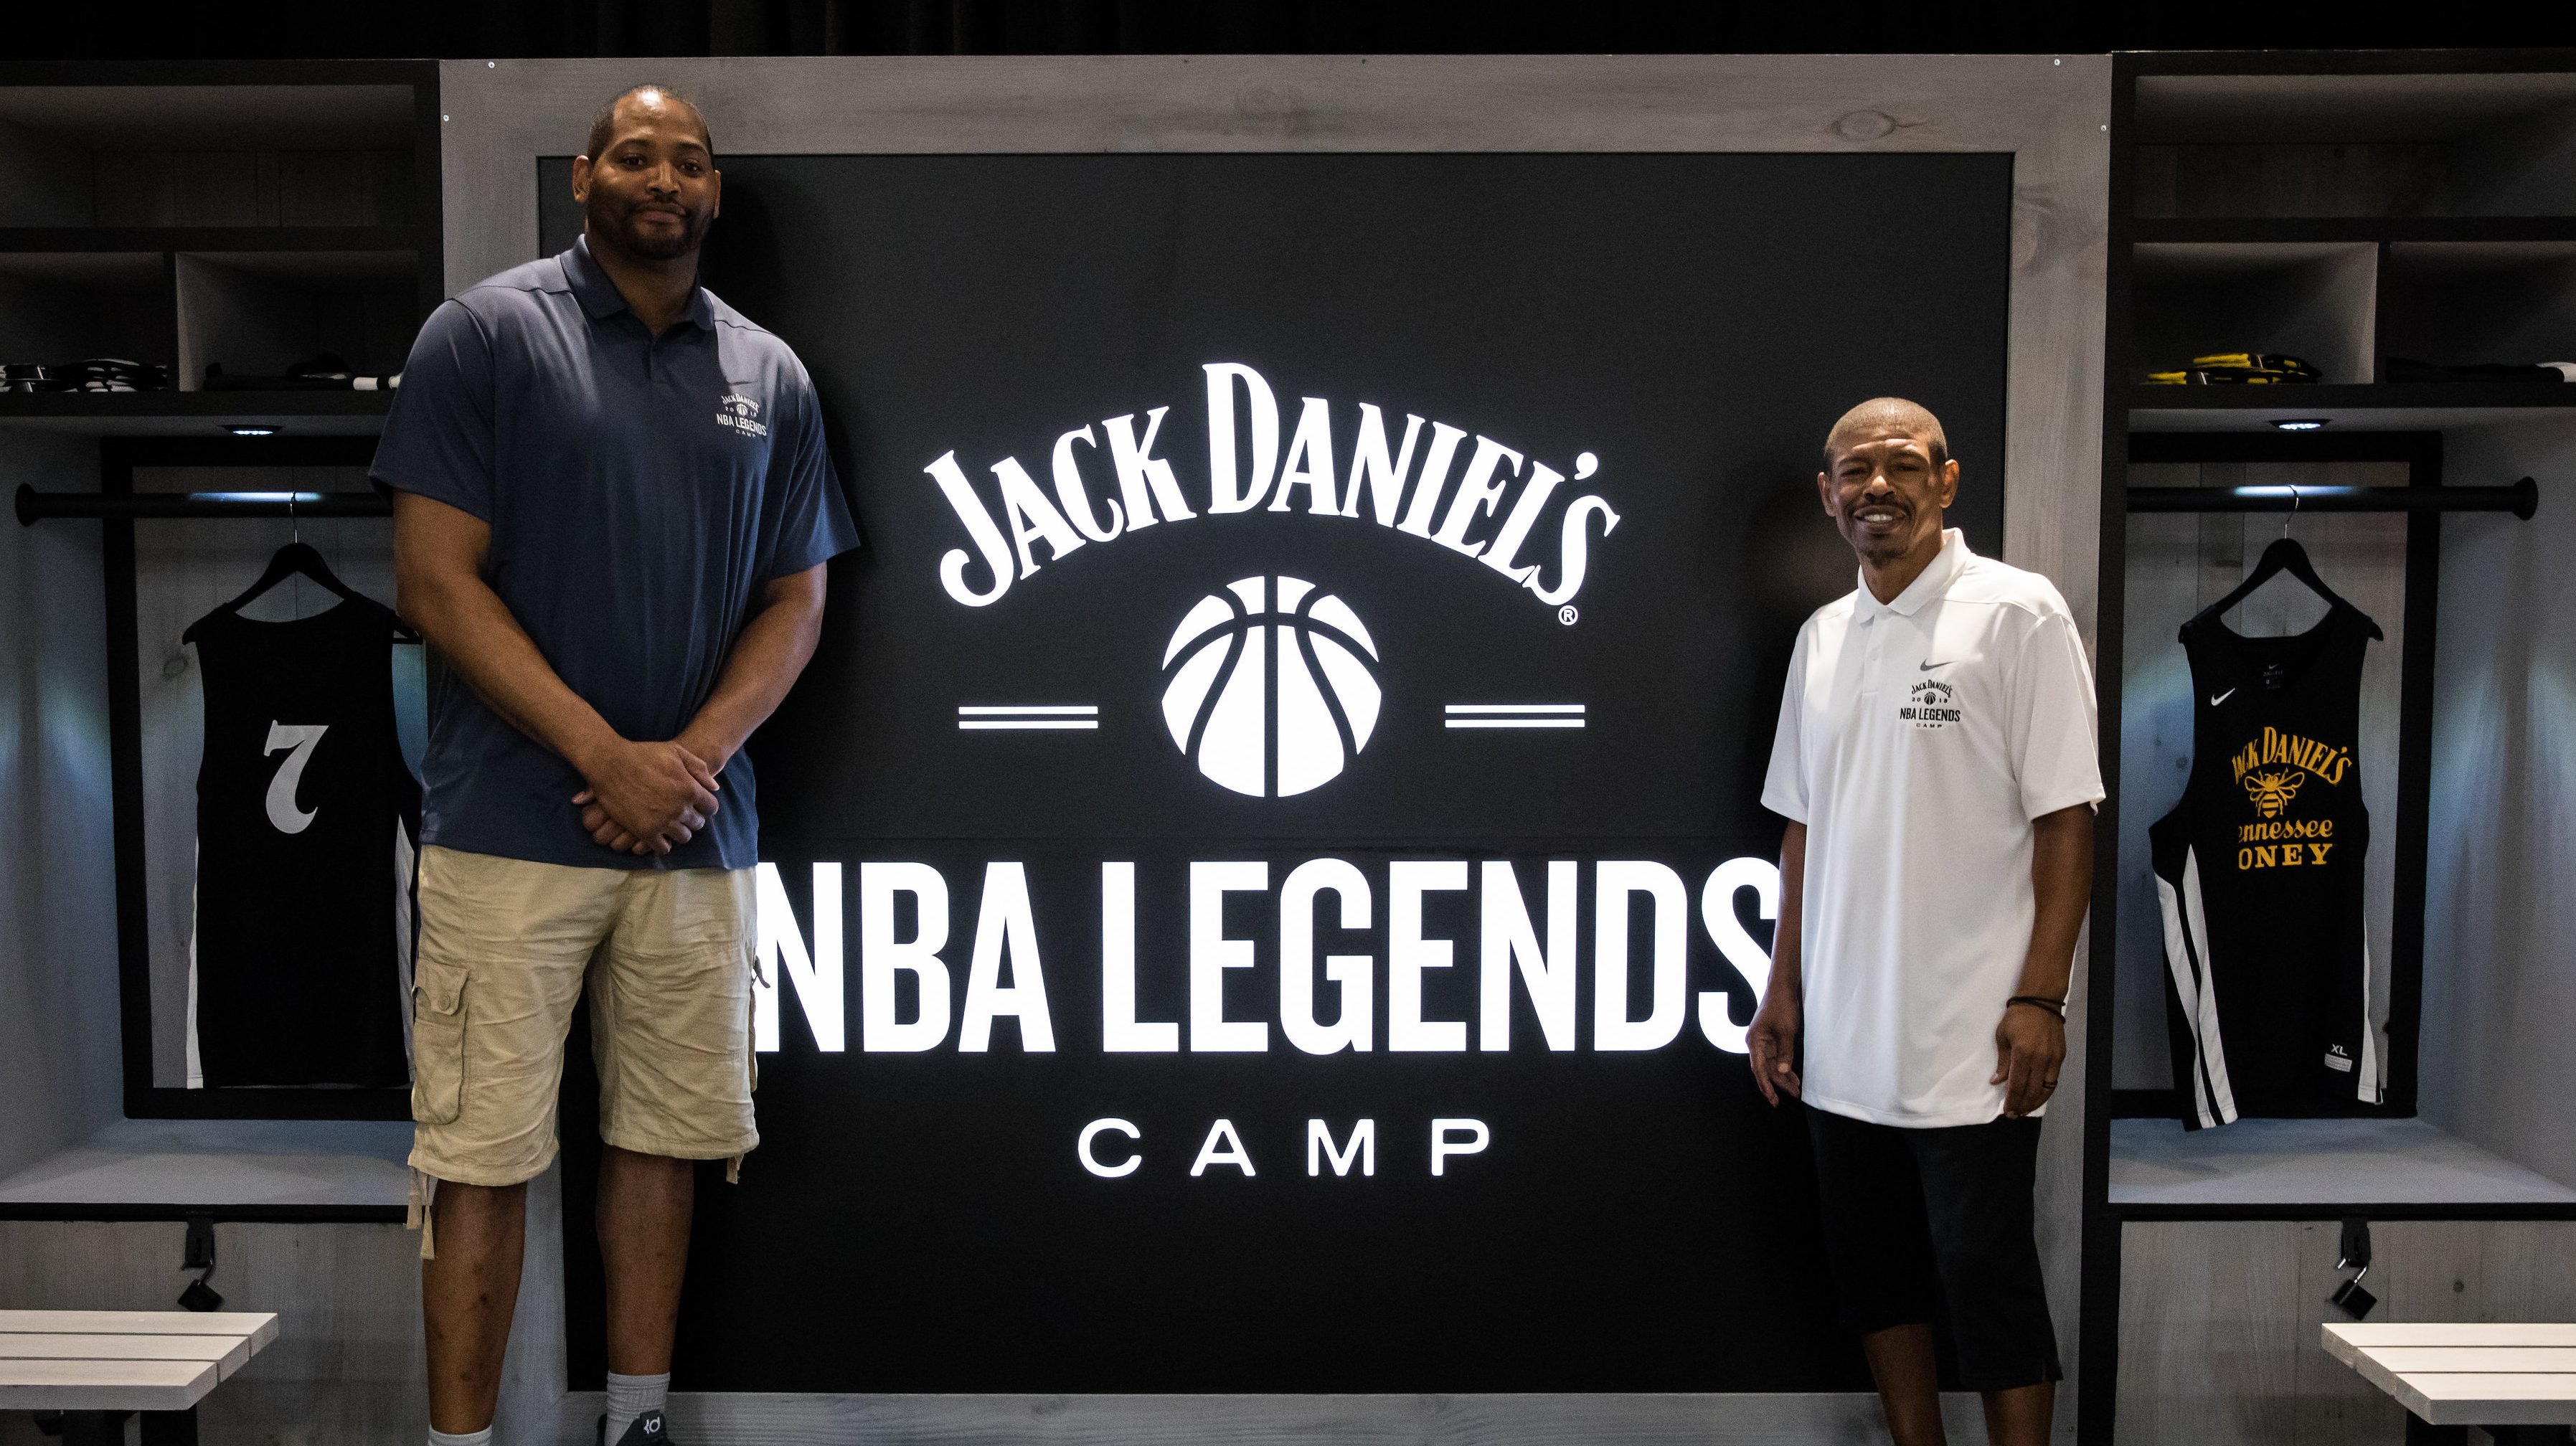 Former NBA players Robert Horry (left) and Muggsy Bogues (right) participate in the 2018 Jack Daniel's NBA Legends Camp.